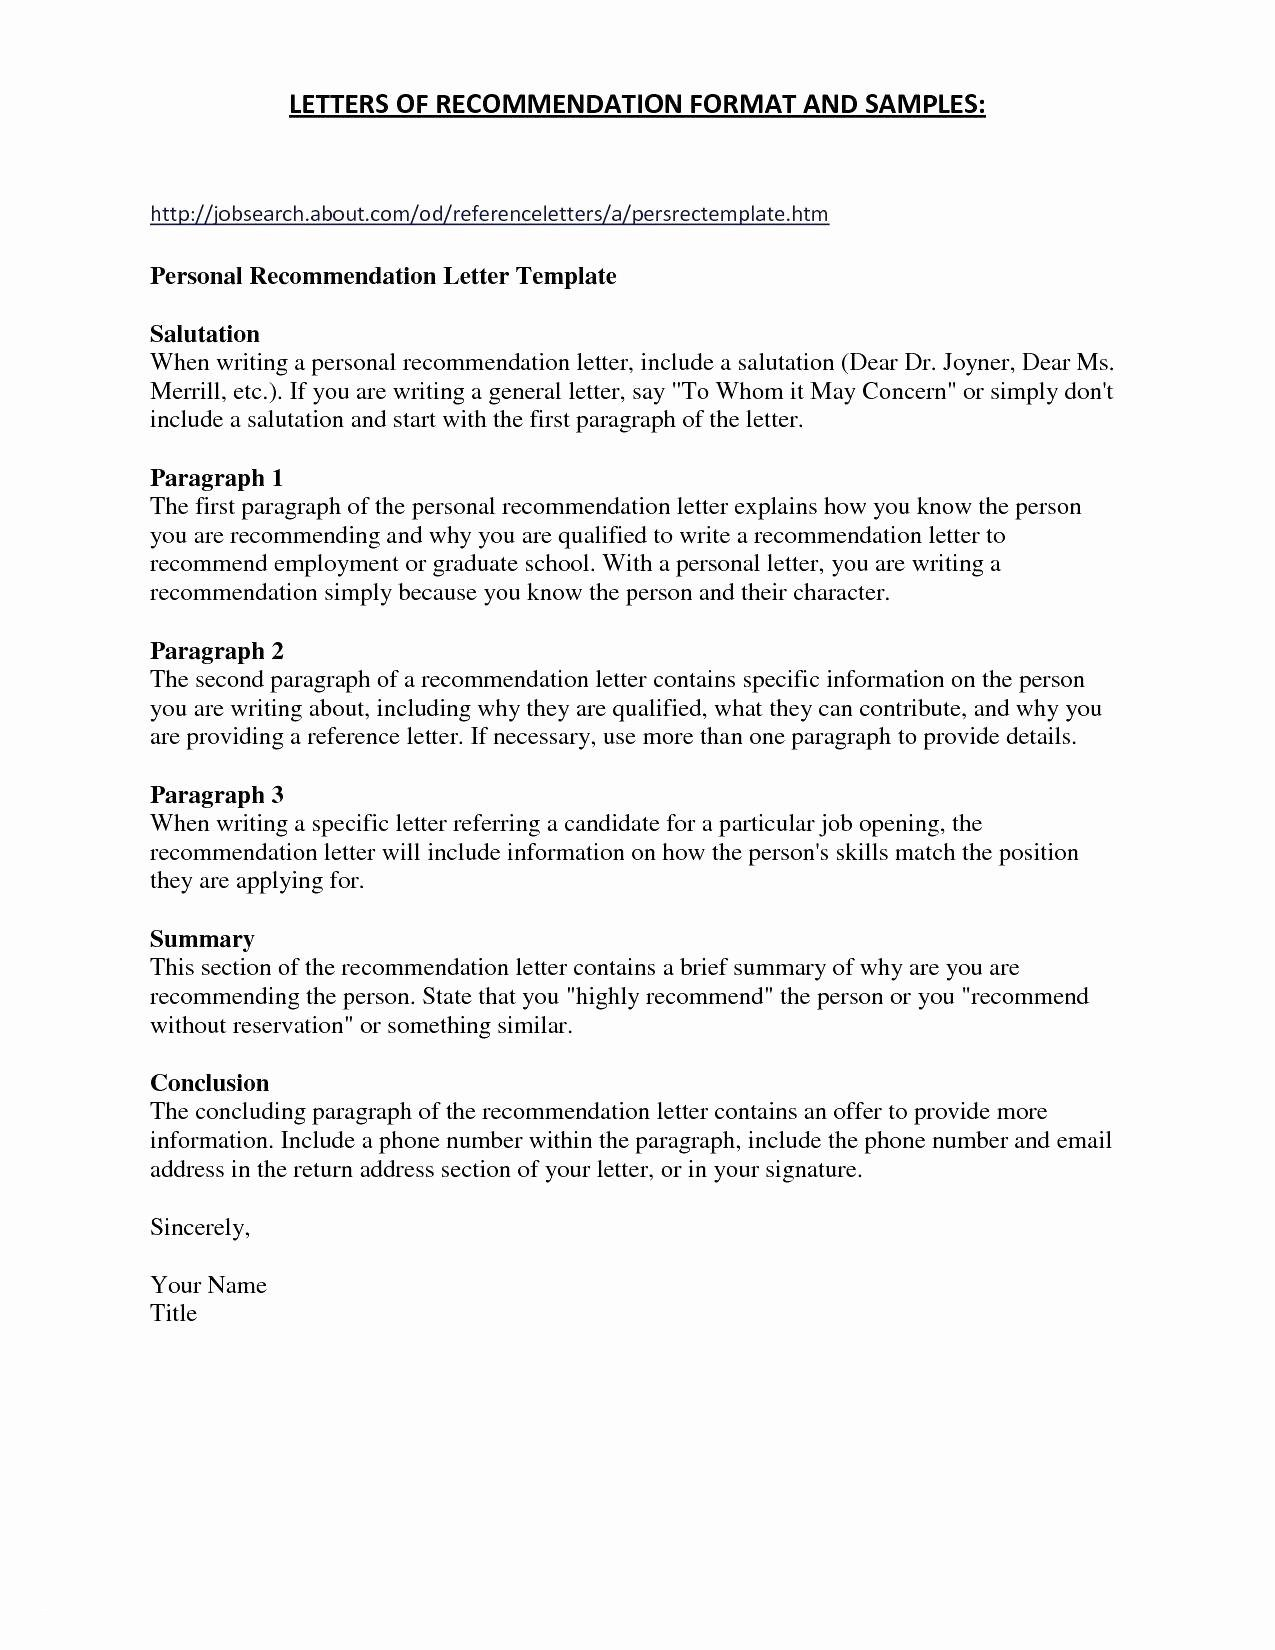 Insurance Referral Letter Template - Thank You Letter Template Jossgarman Jossgarman